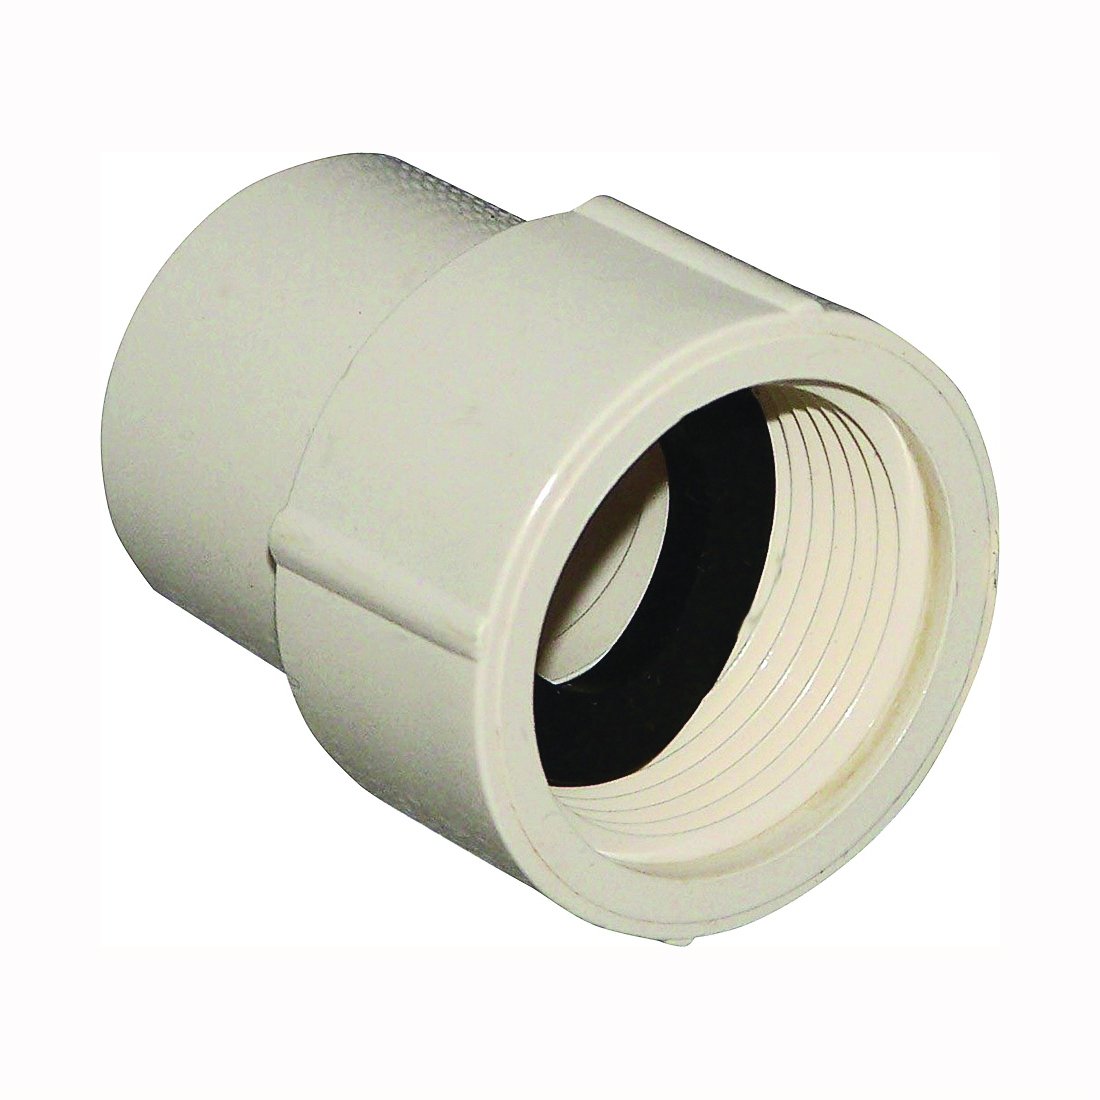 Picture of GENOVA 500 50305 Pipe Adapter, 1/2 in, Slip x FIP, CPVC, 100 psi Pressure